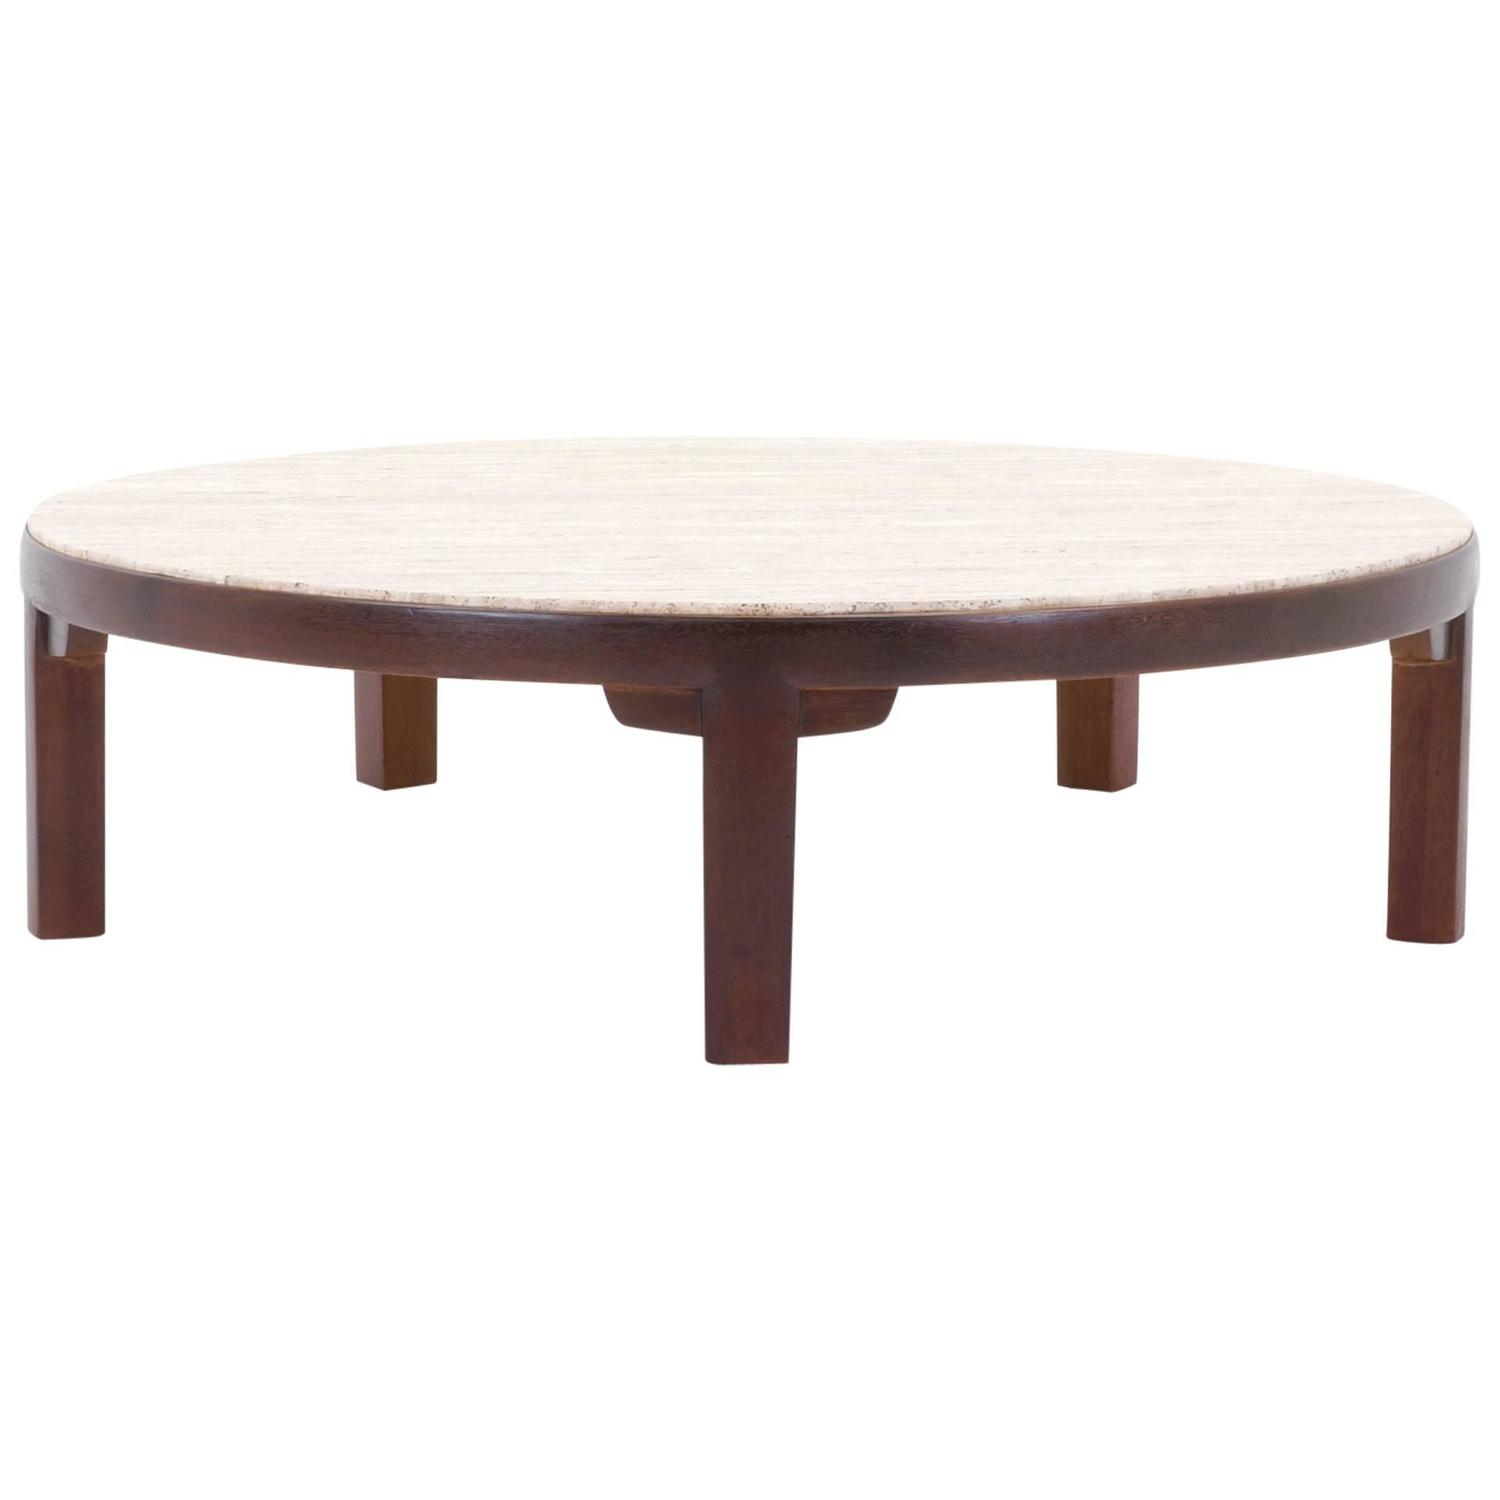 Edward Wormley For Dunbar Round Coffee Table With Travertine Top At 1stdibs